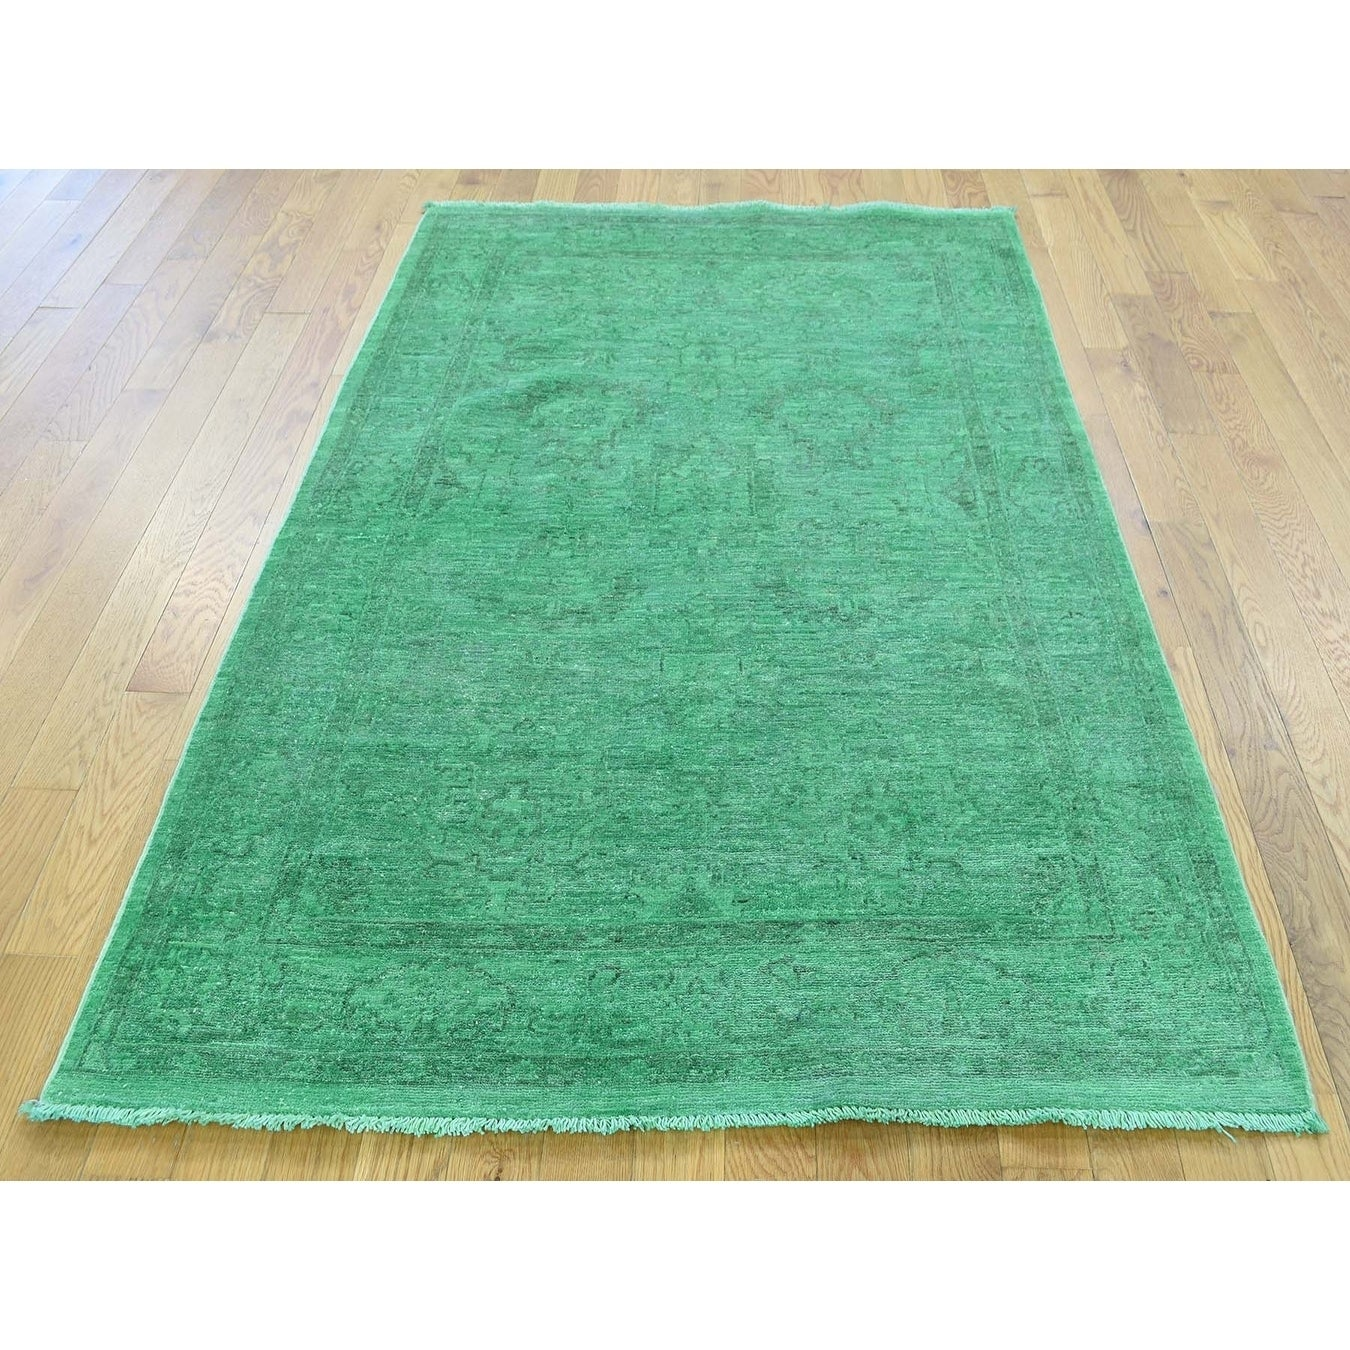 Hand Knotted Green Overdyed & Vintage with Wool Oriental Rug - 4 x 6